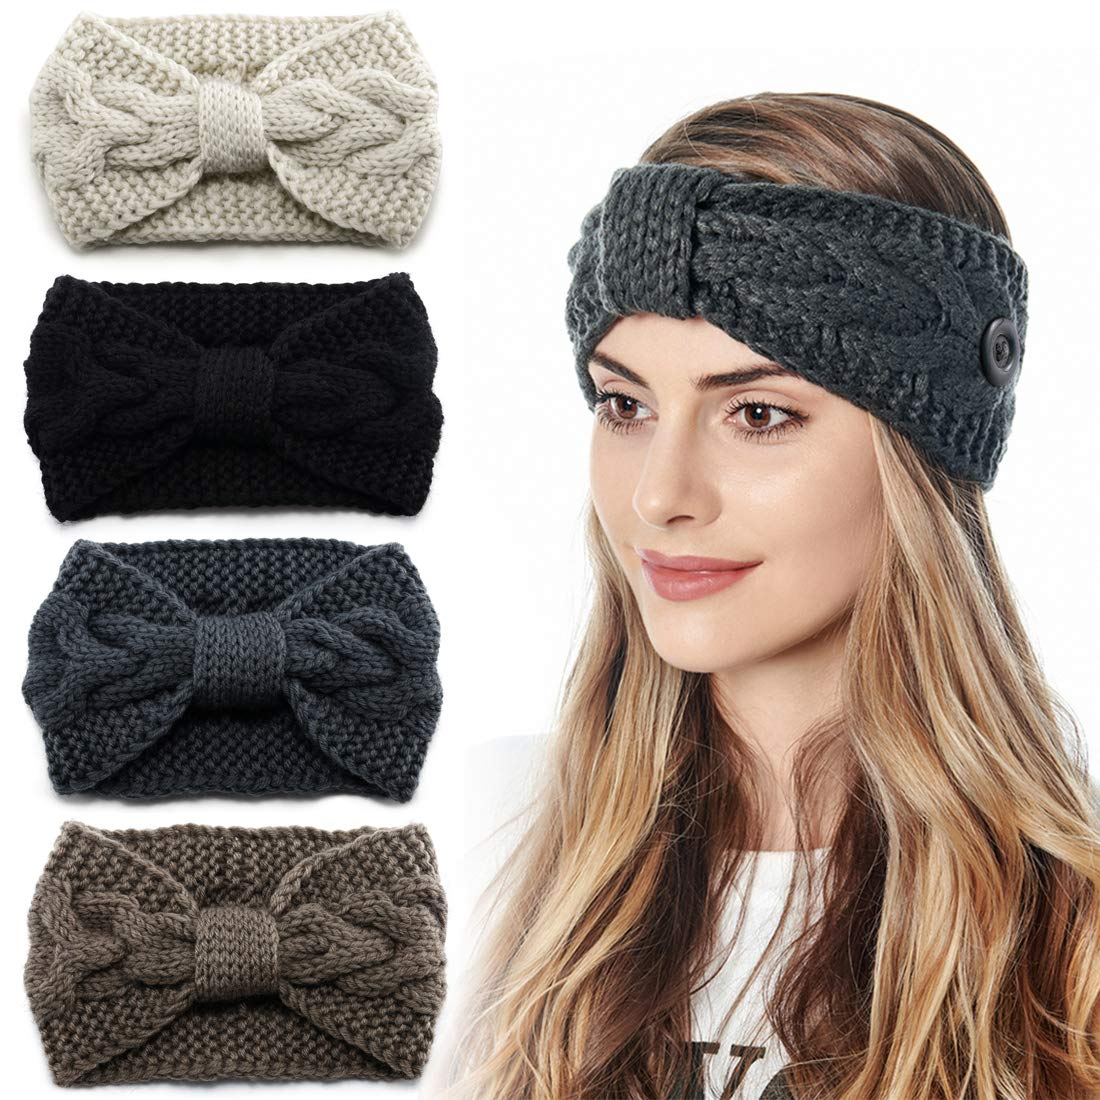 Women Ear Warmers Winter Headbands with Buttons for Mask Crochet Knitted Bands